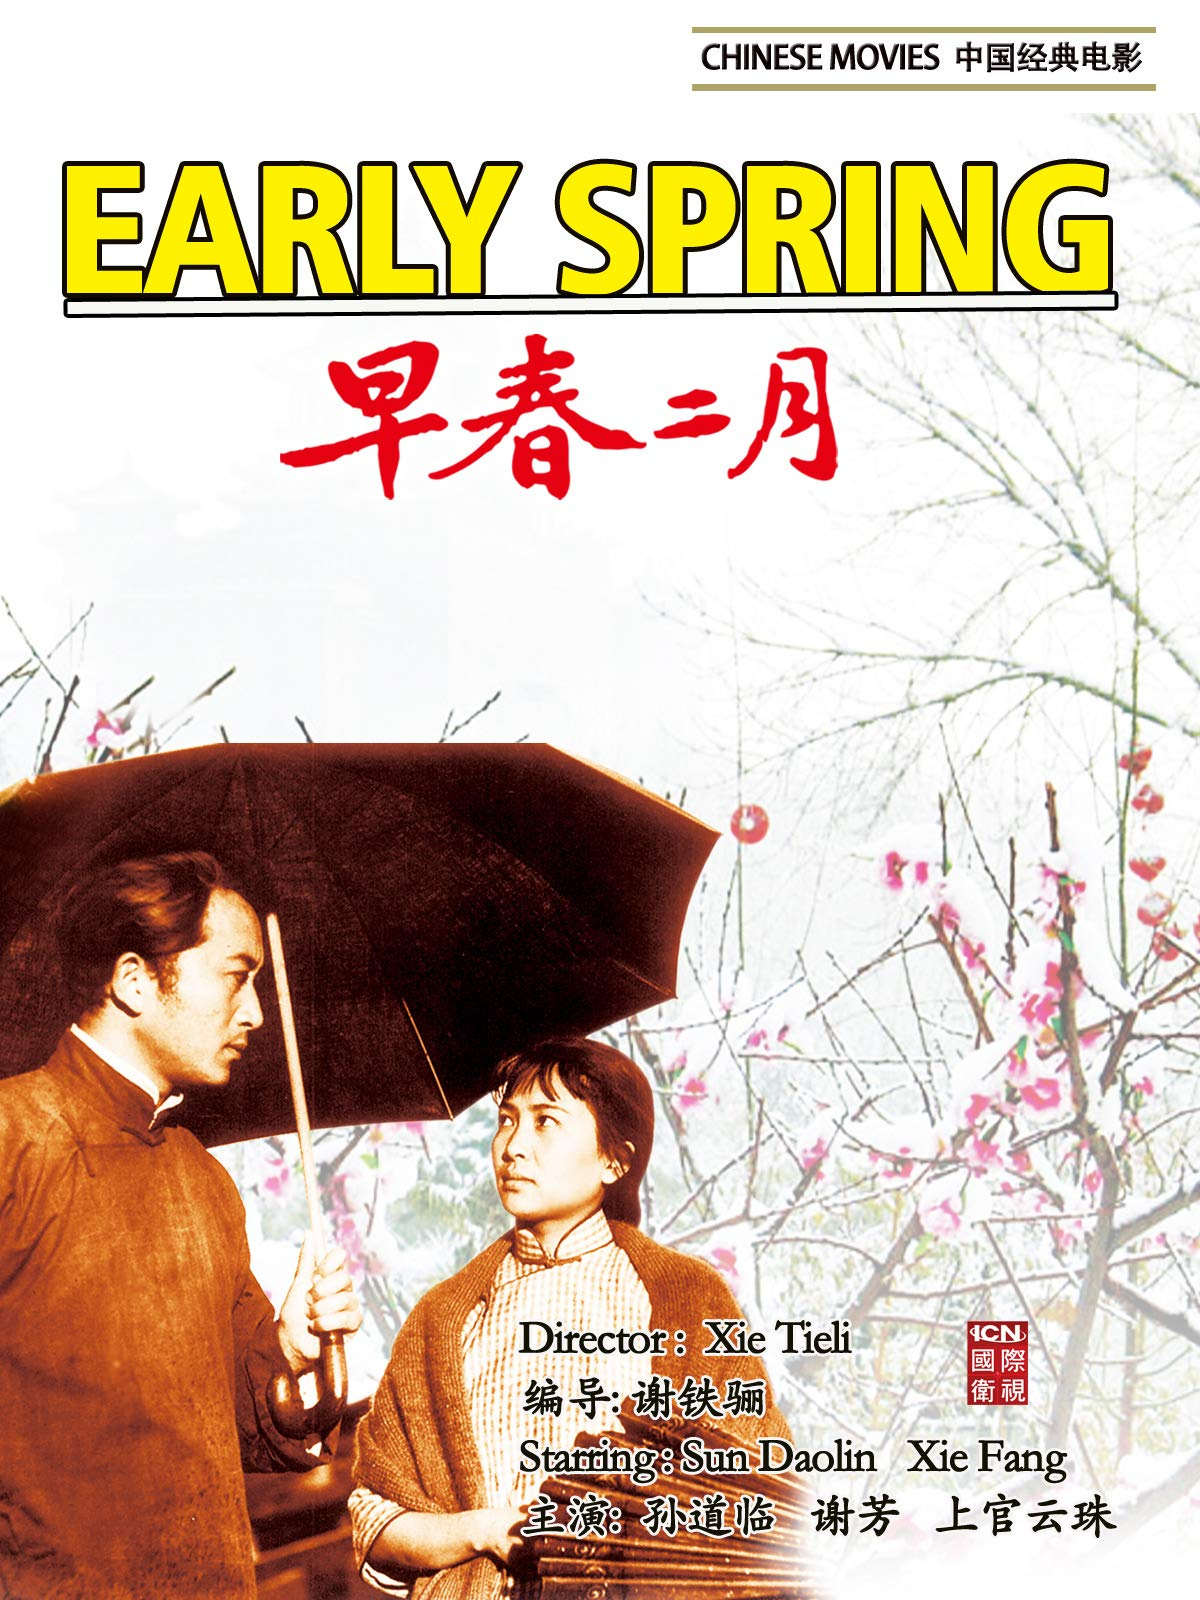 Chinese Movies-Early Spring